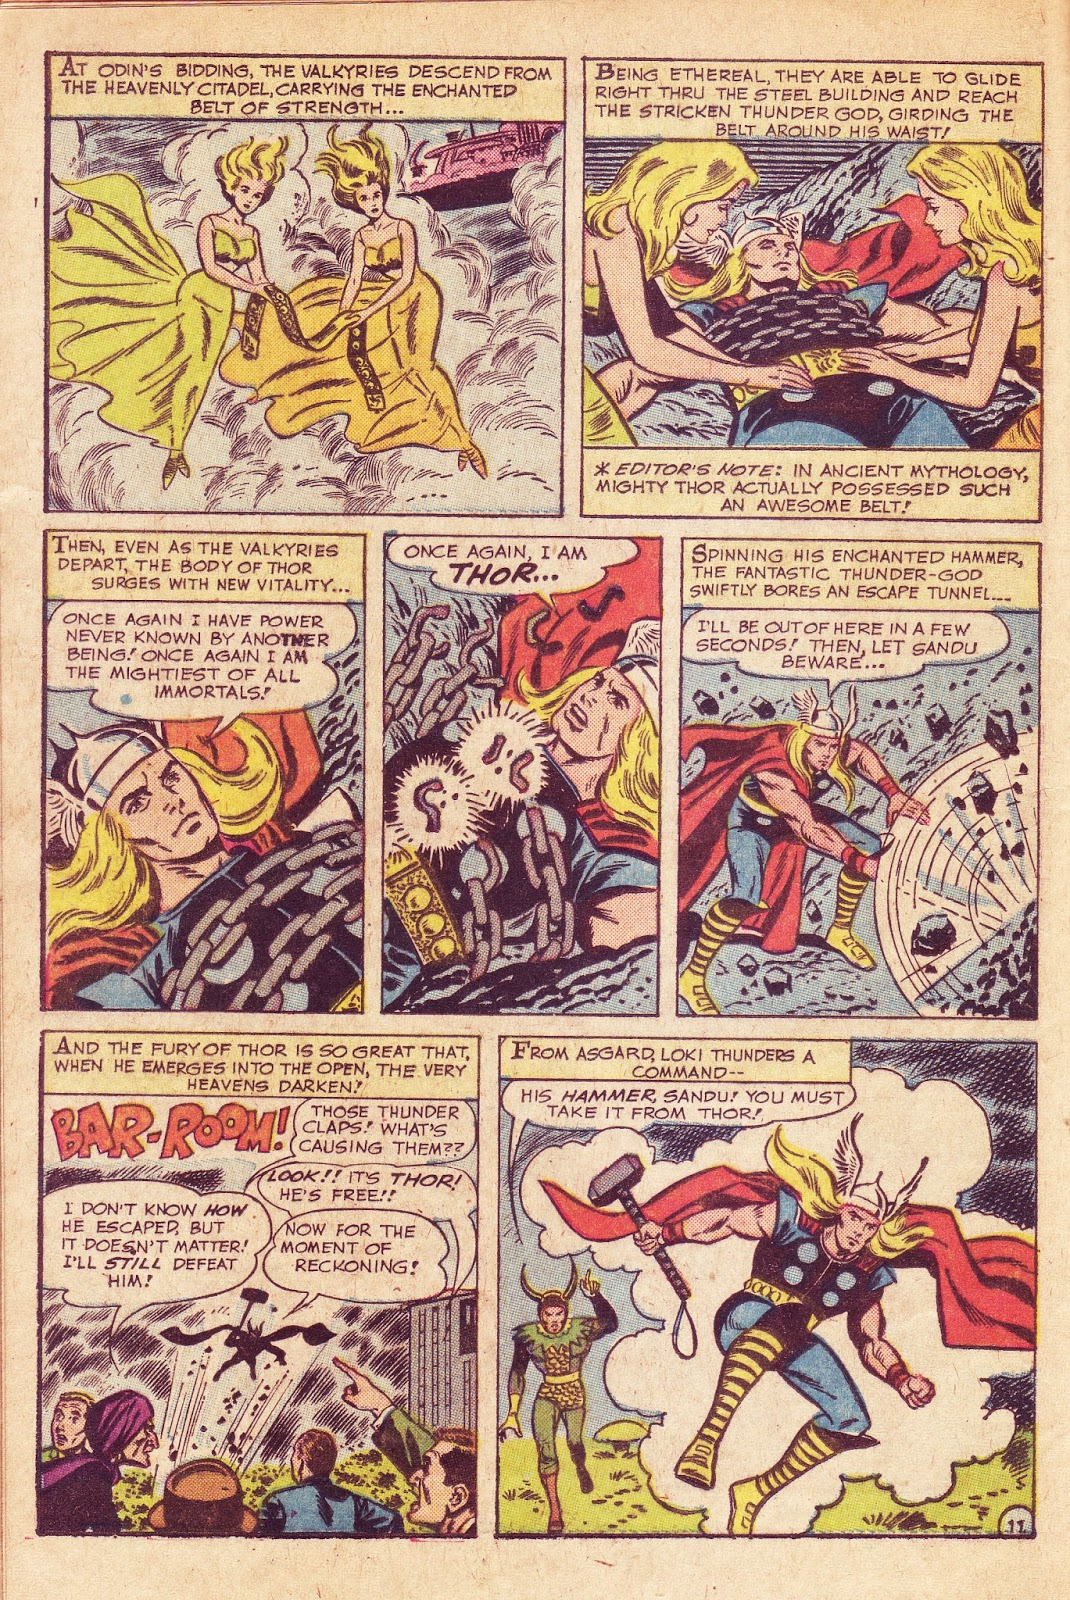 The Author Explains That At Time His Article Was Written Iron Man Had Just Debuted In Tales Of Suspense 39 Which Would Line Up With Marvel Comics